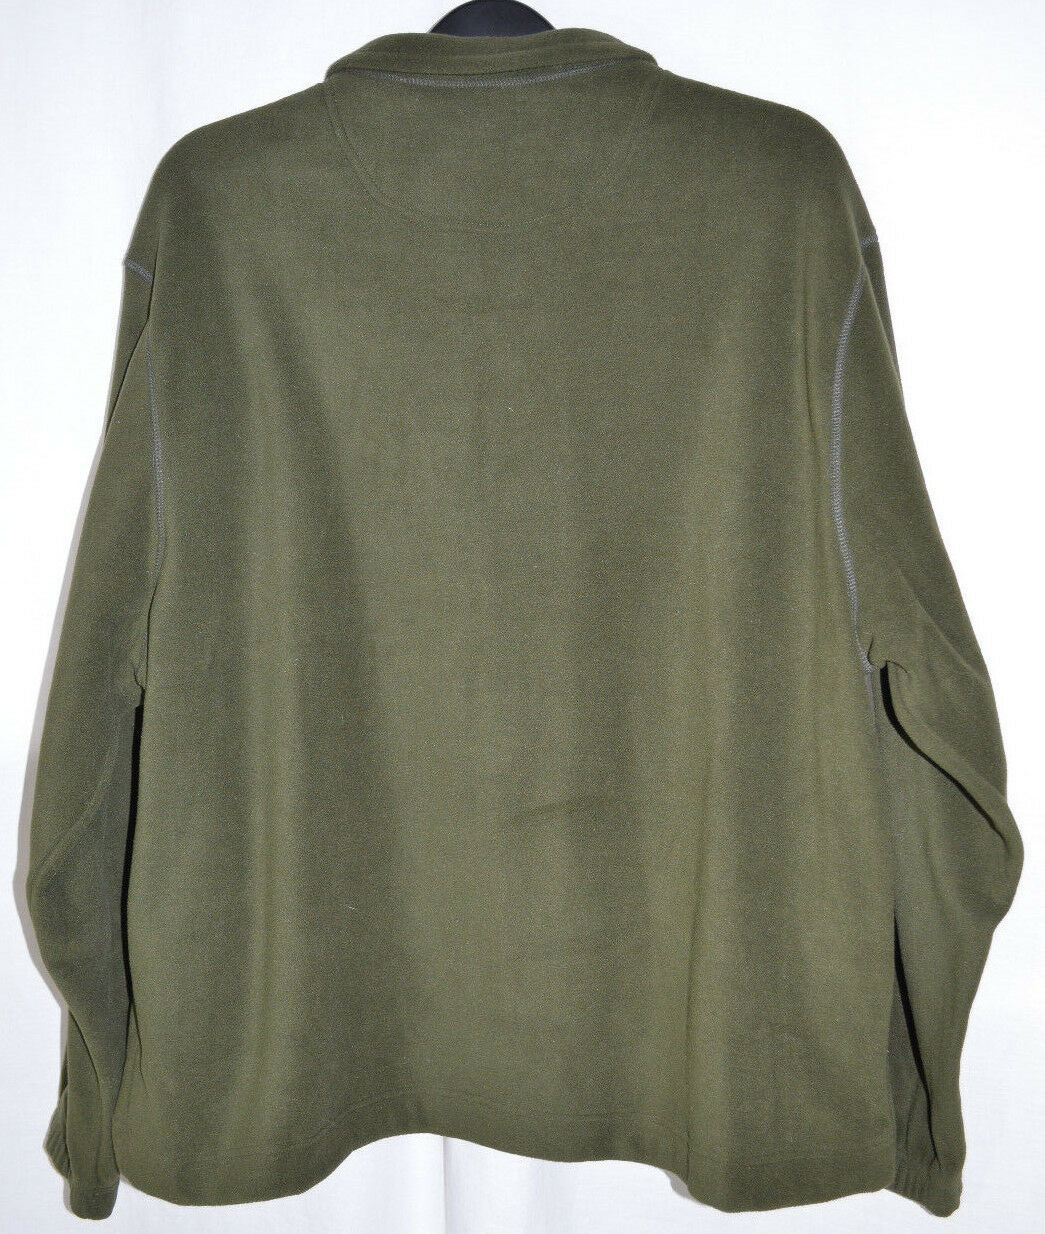 Saddlebred Fleece Pullover Jacket 1/4 Zip Olive Green Men's XL | eBay